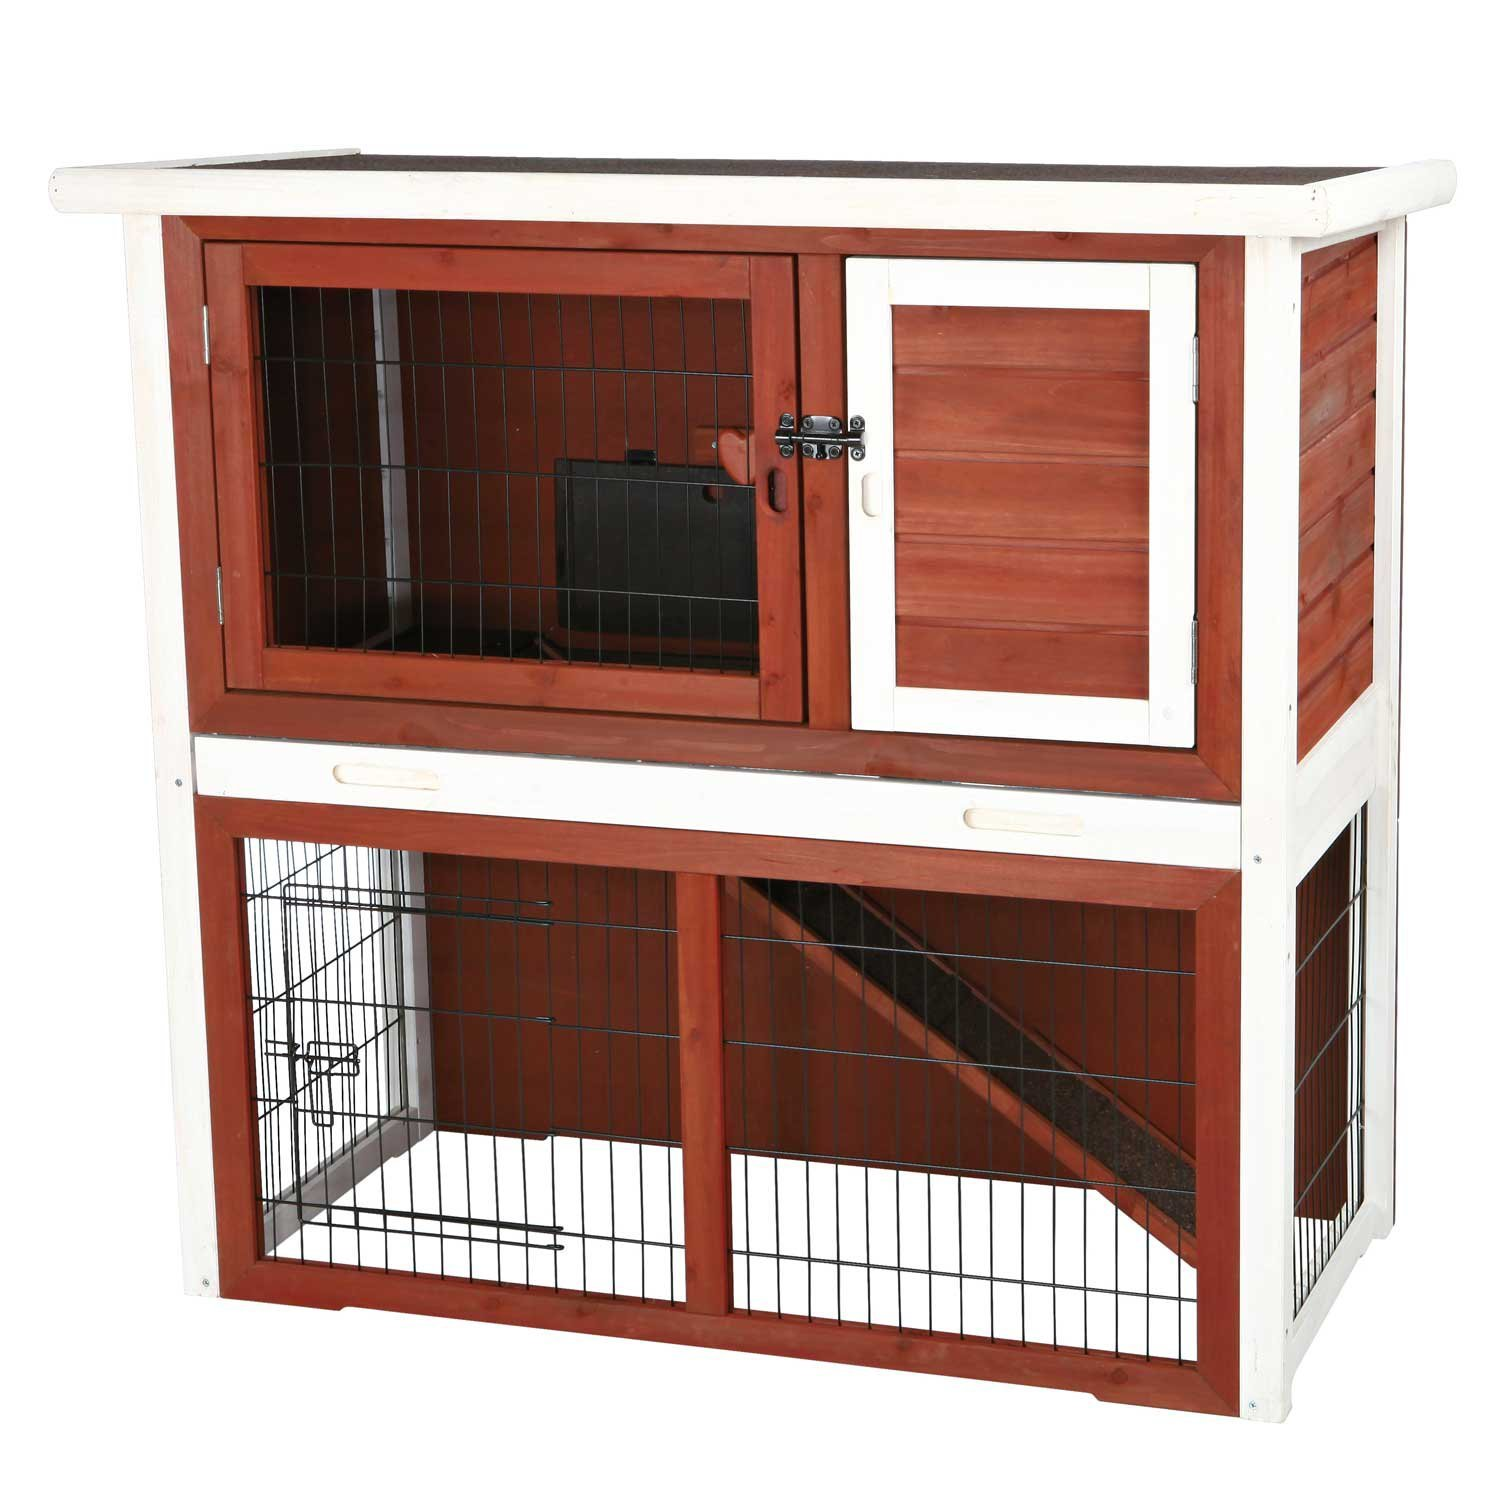 TRIXIE Pet Products 62306 Rabbit Hutch With Sloped Roof, Medium, Brown & White